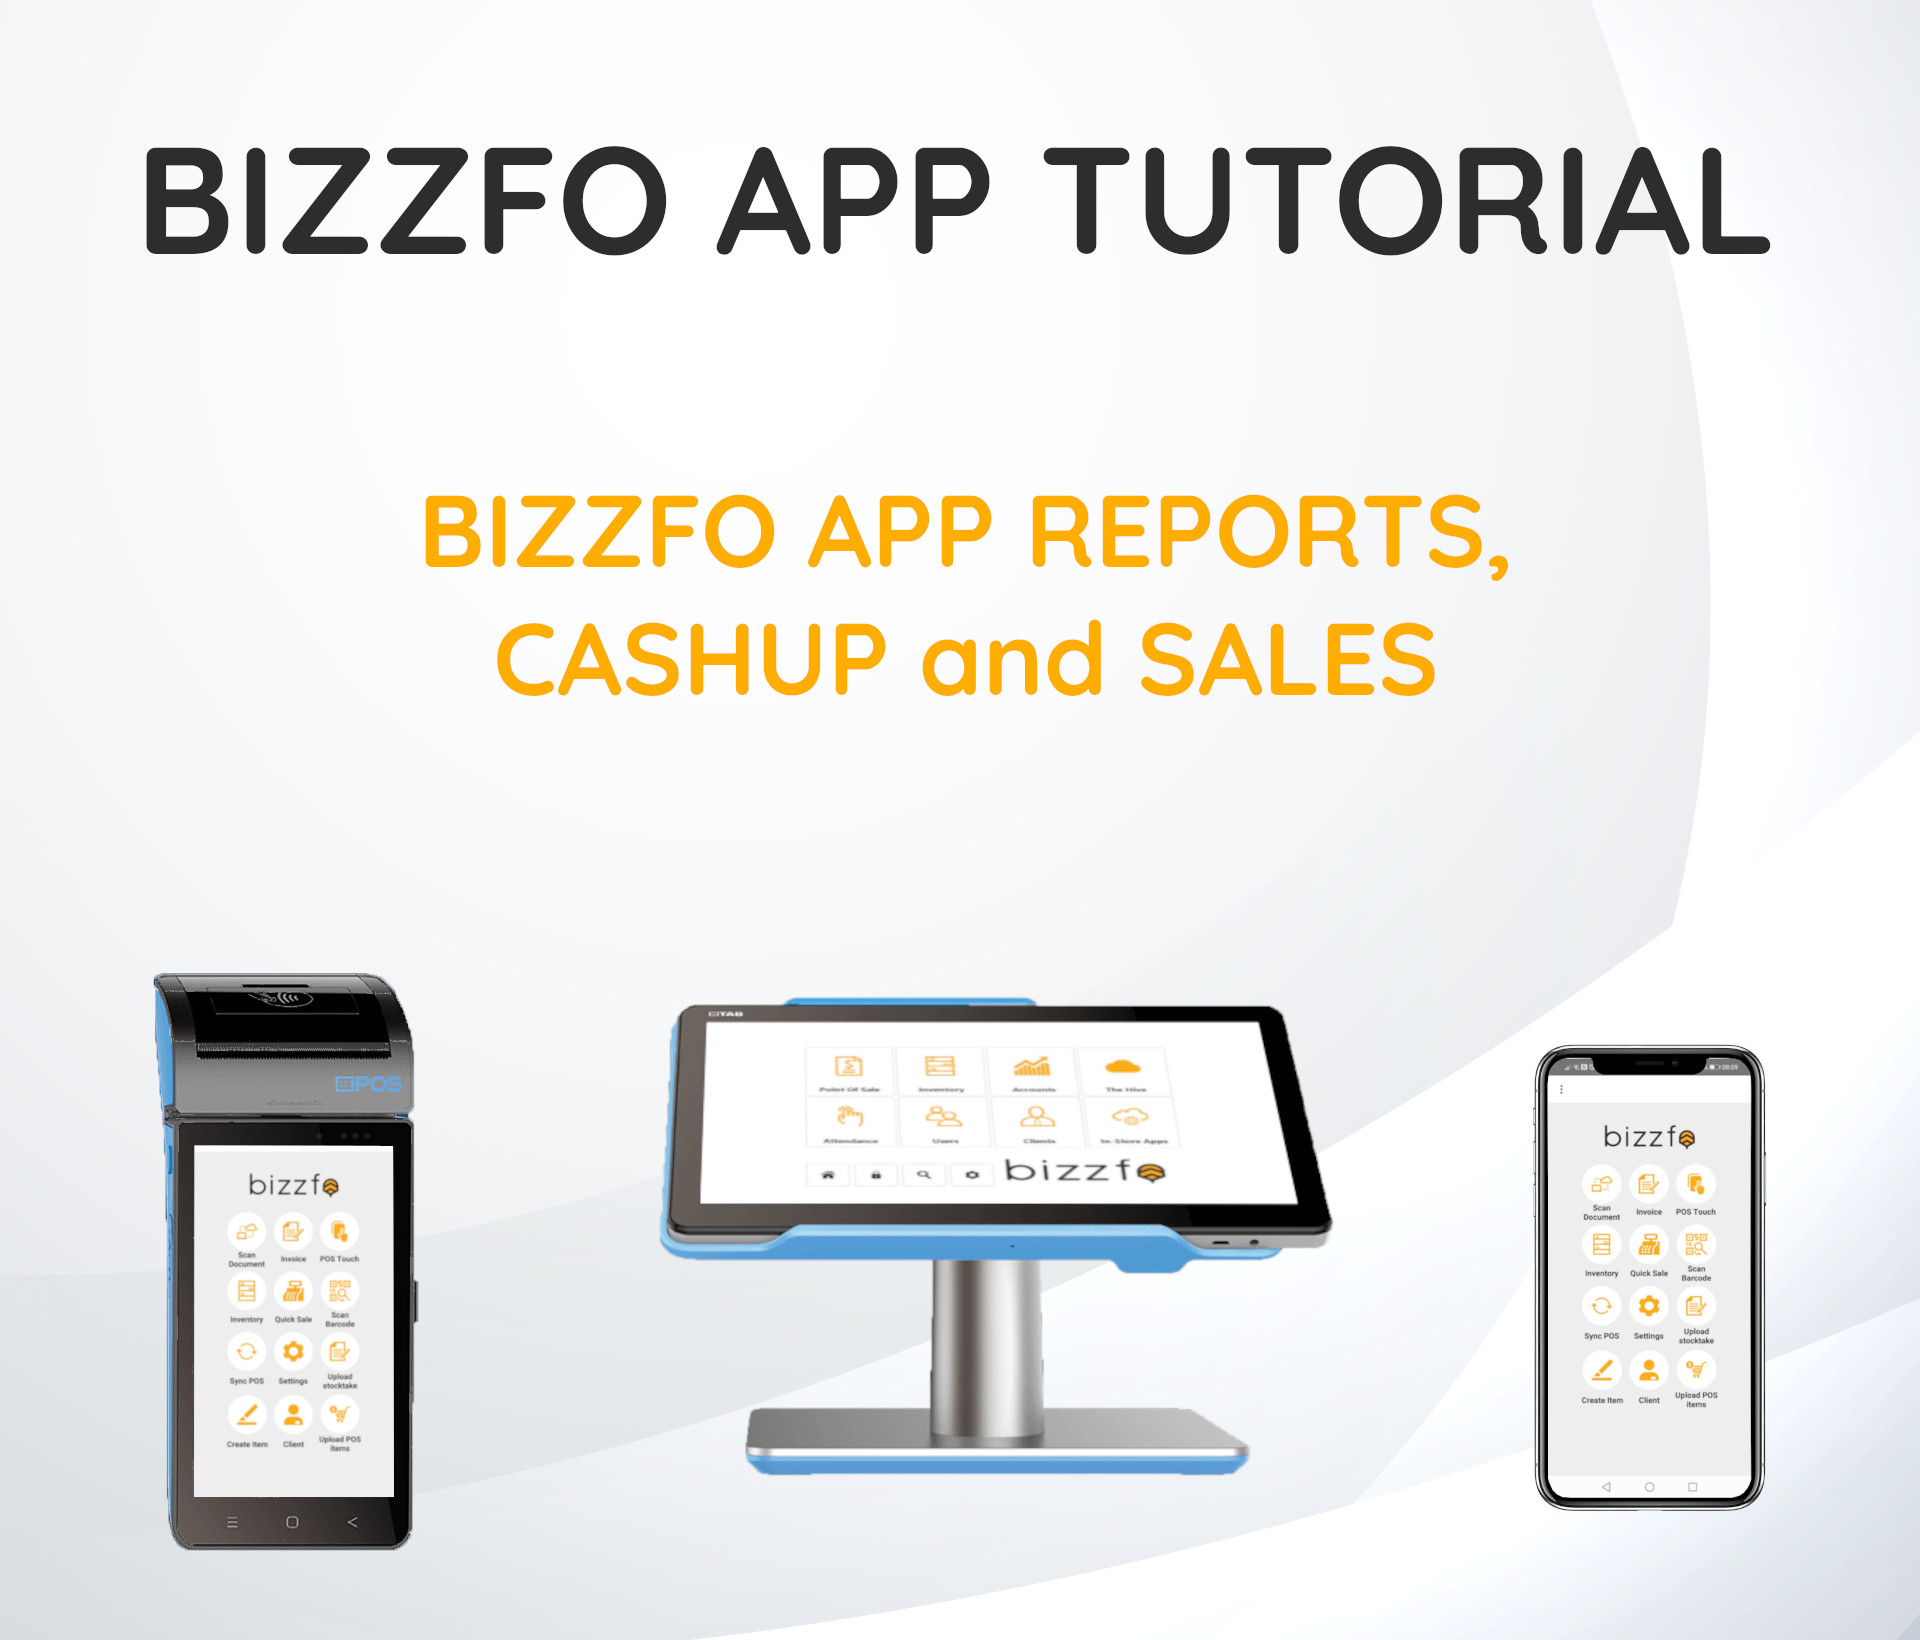 Bizzfo App Reports, Cashup and Sales